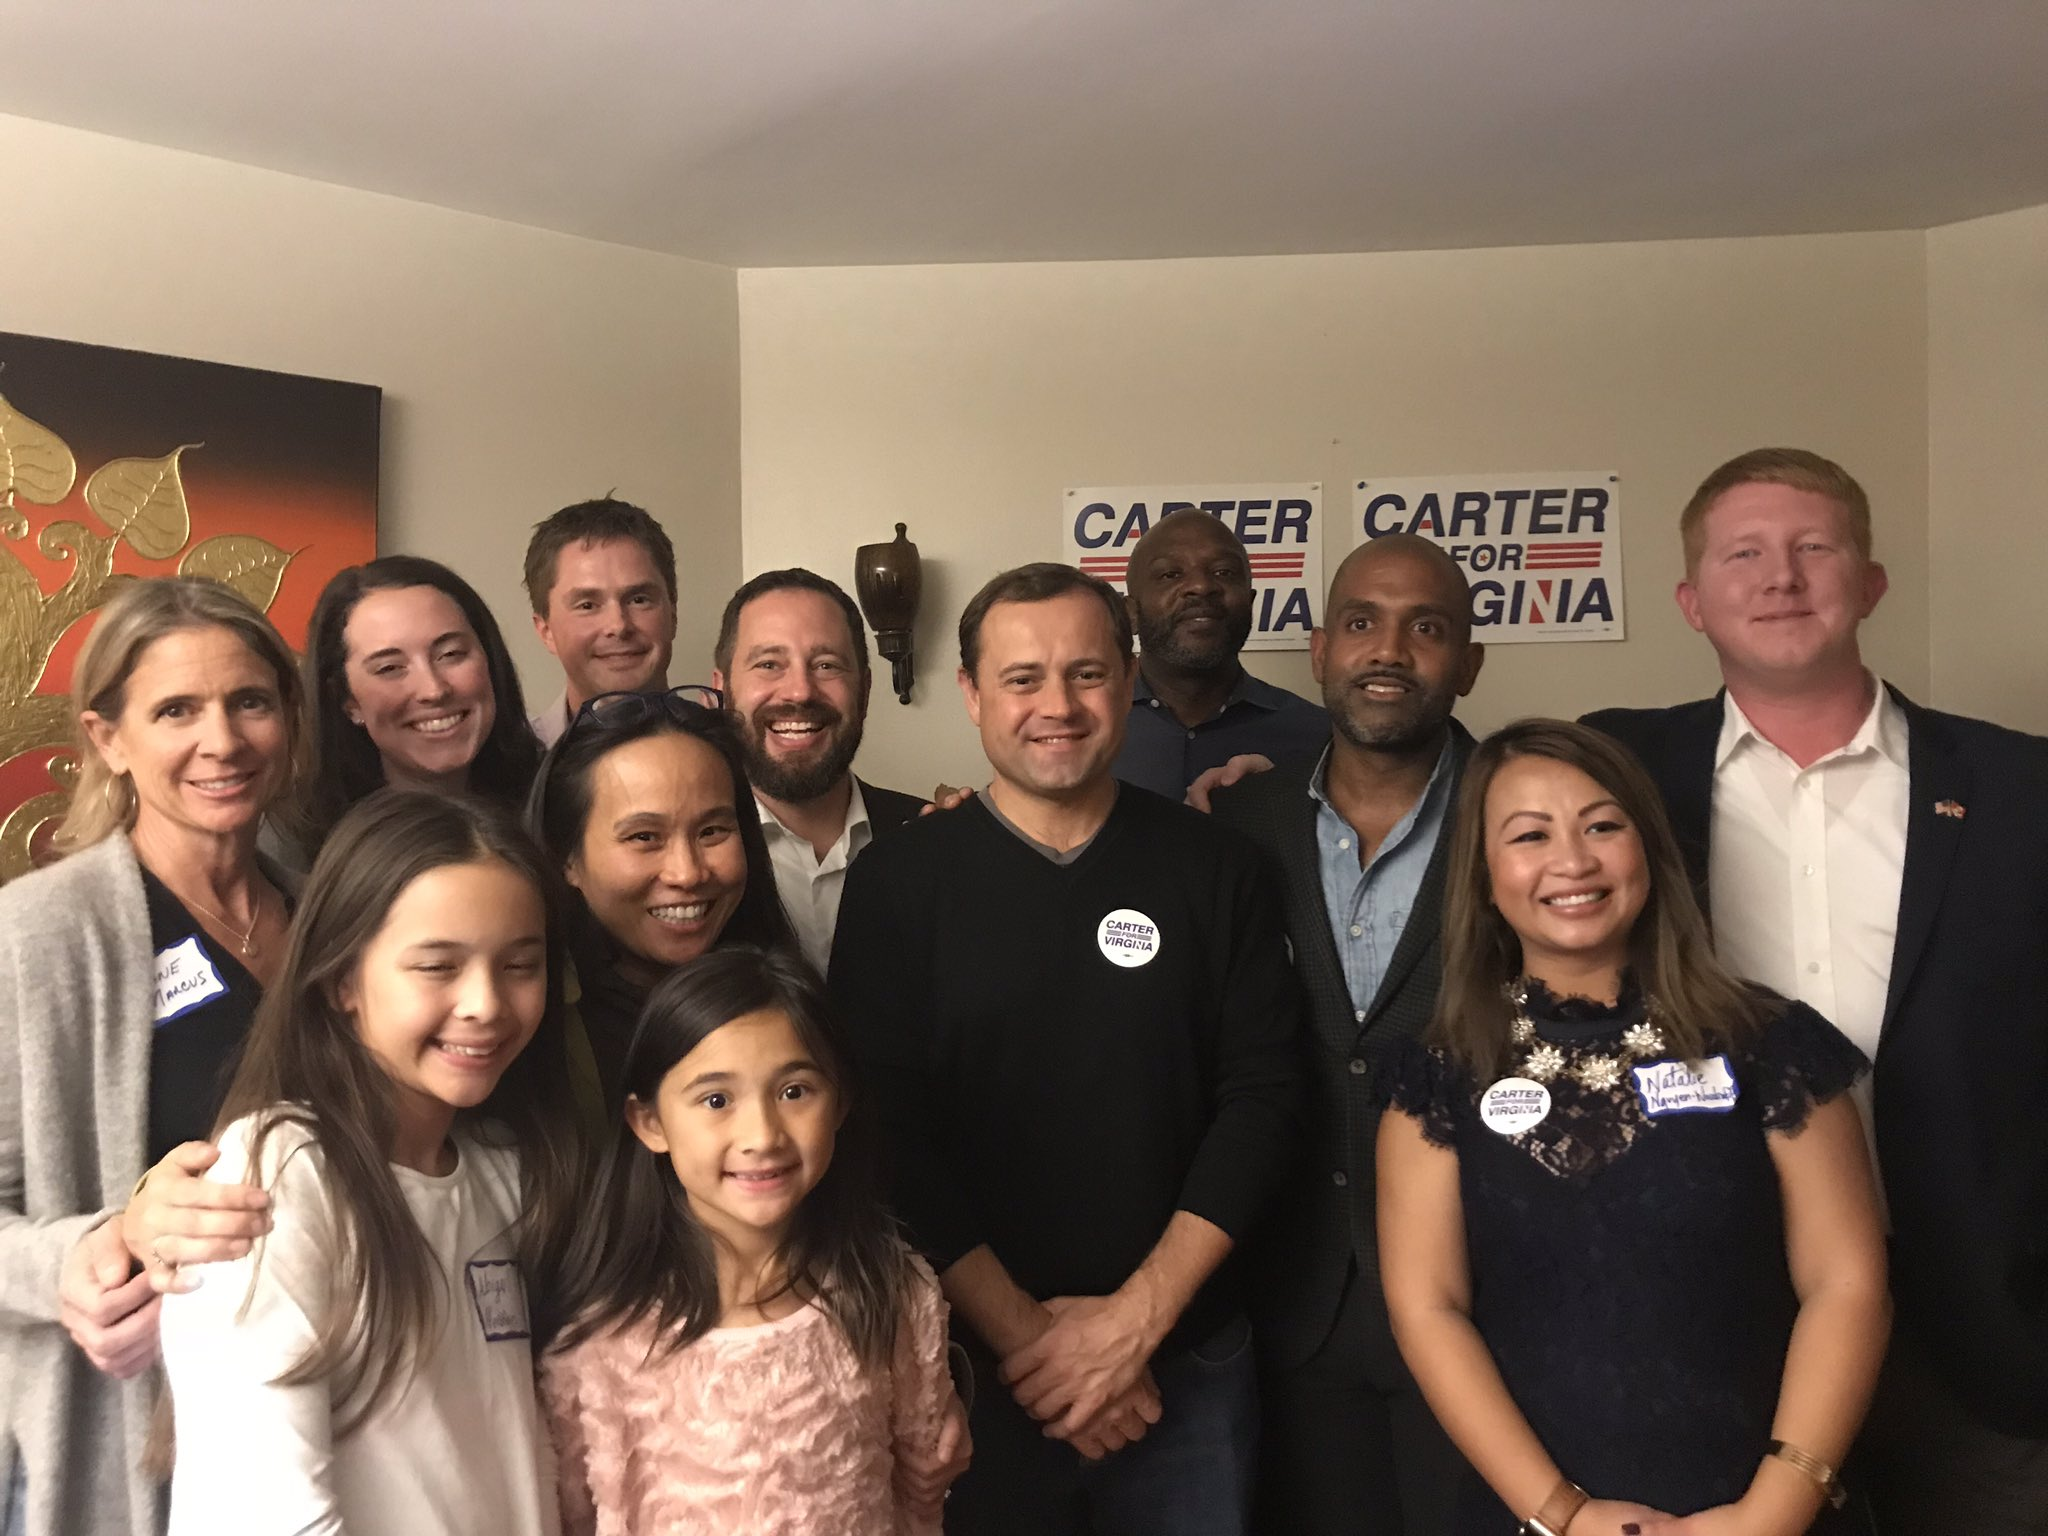 Great host committee and momentum for the people-powered @carterforva campaign! #winVA https://t.co/JgKcqPbMTw